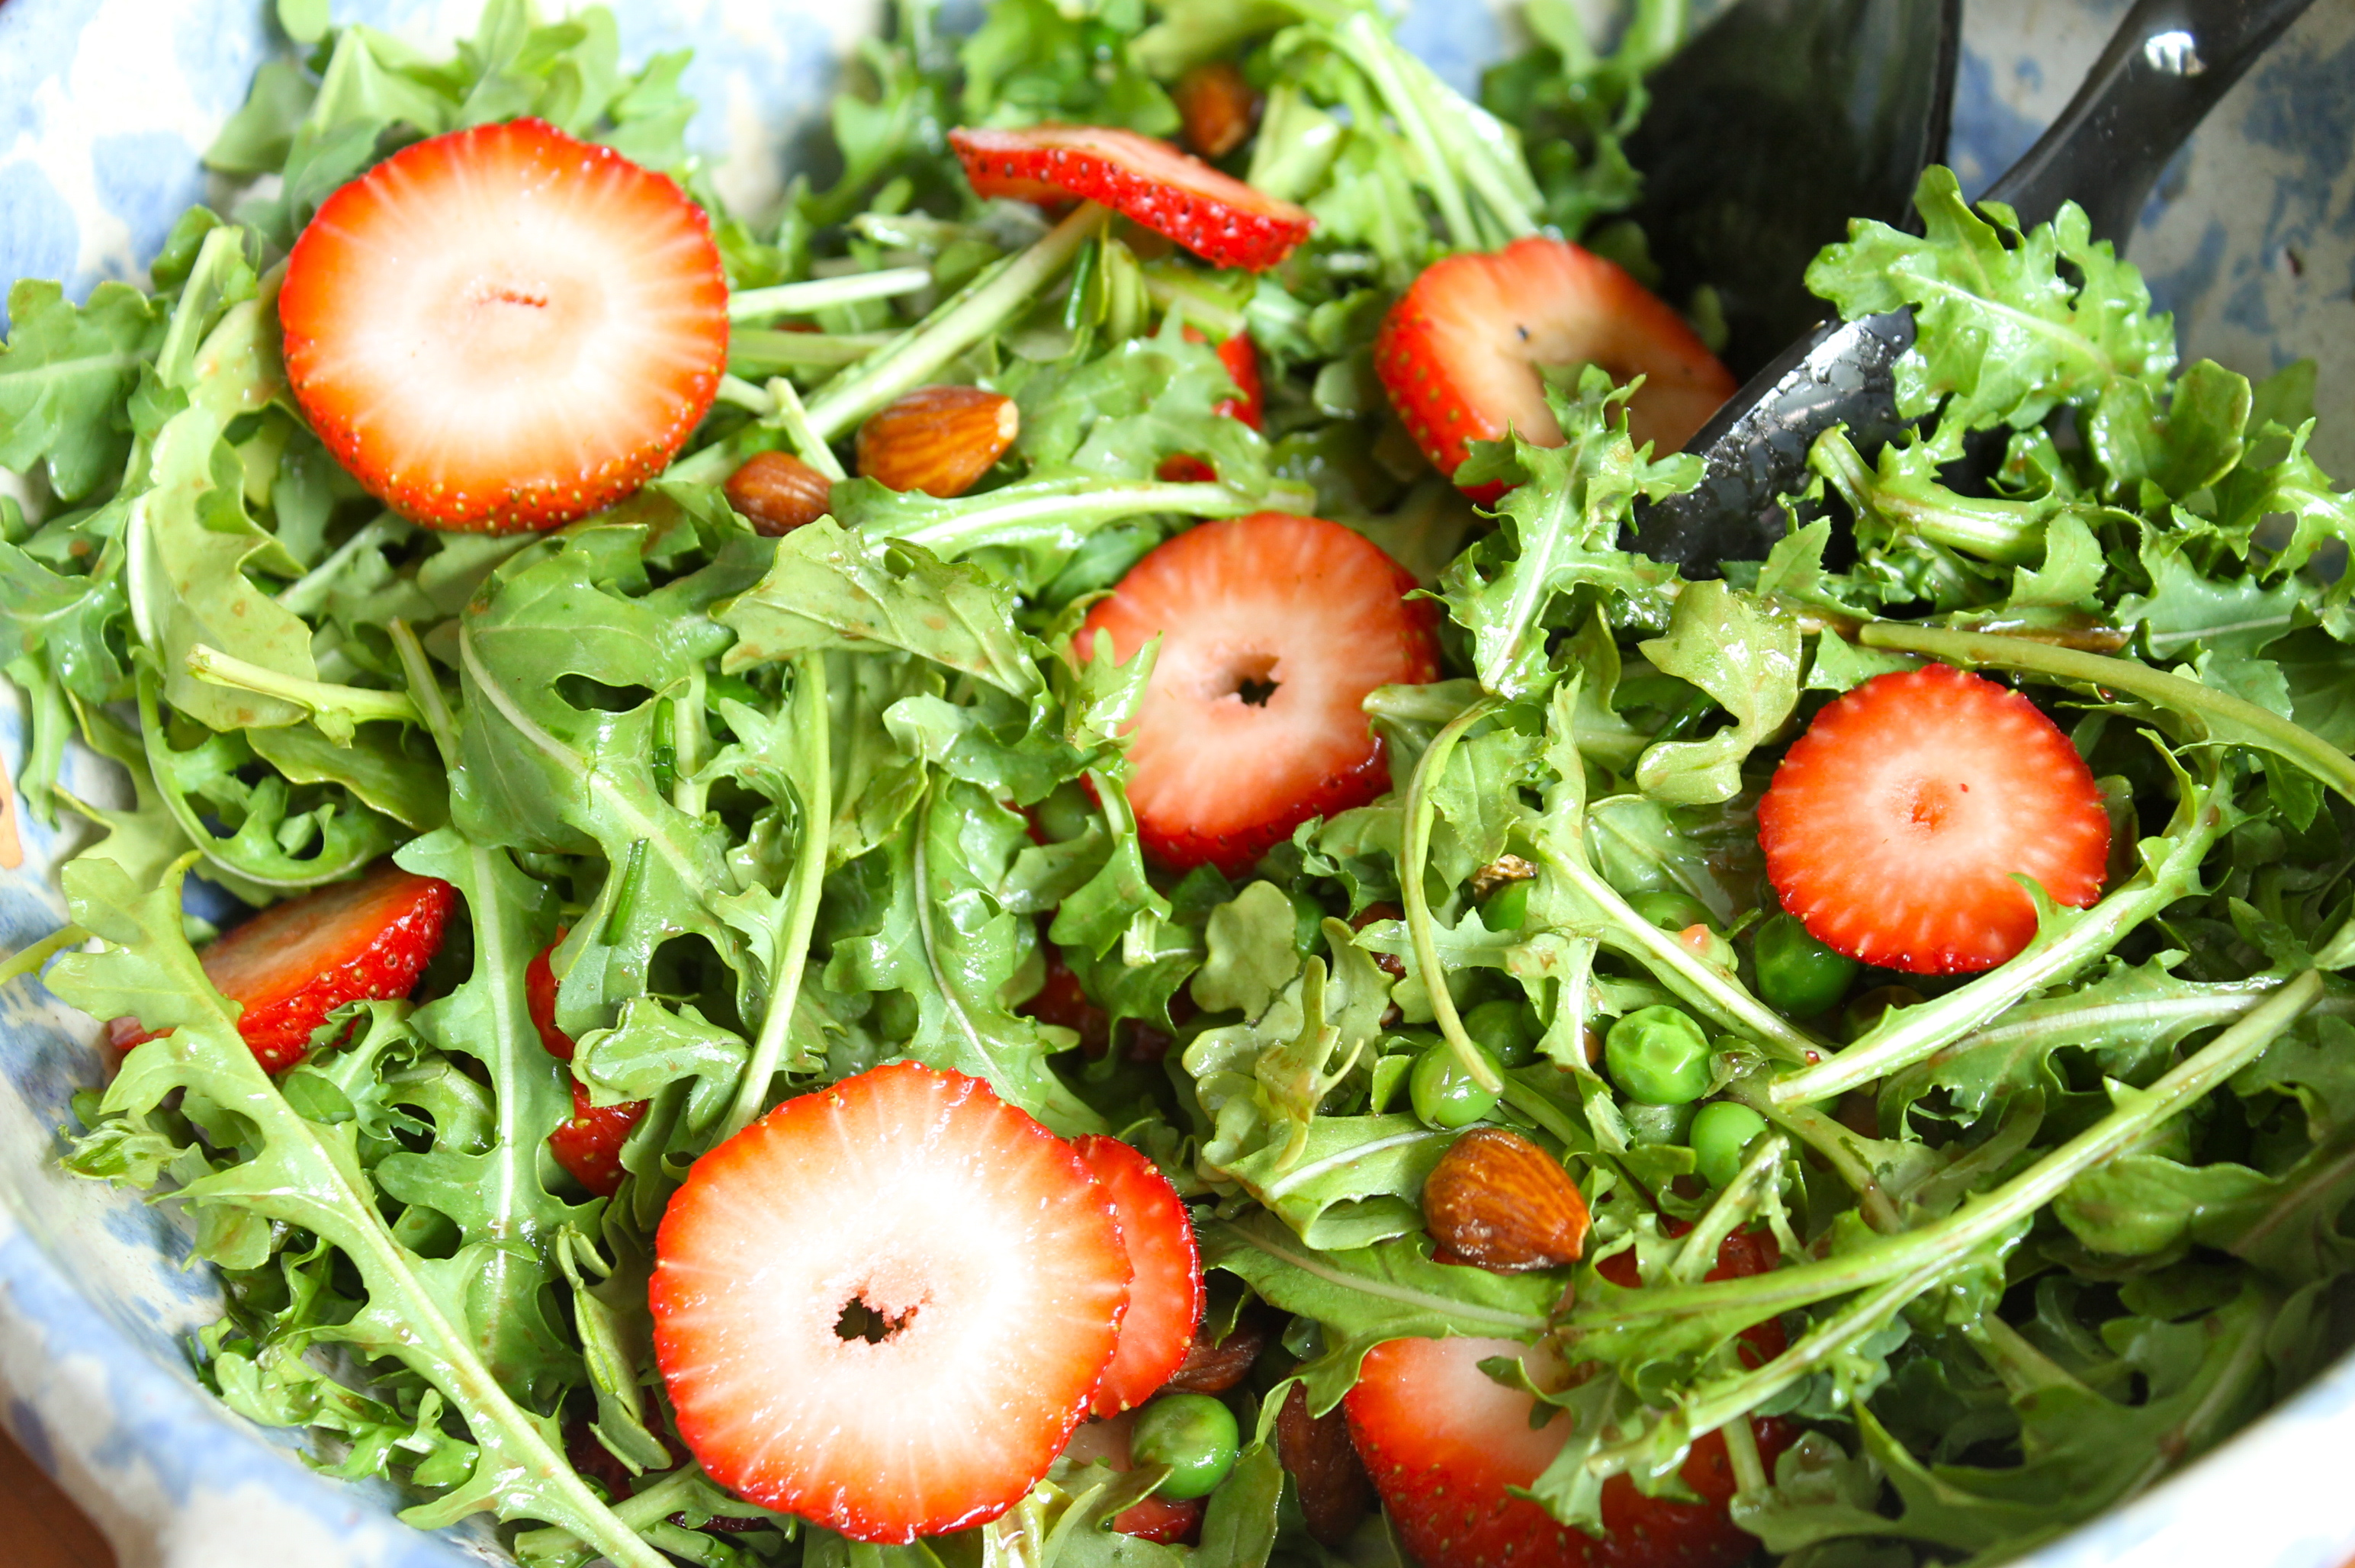 IMG 5902 - Paleo Strawberry/Almond/Pea Salad for Everyone